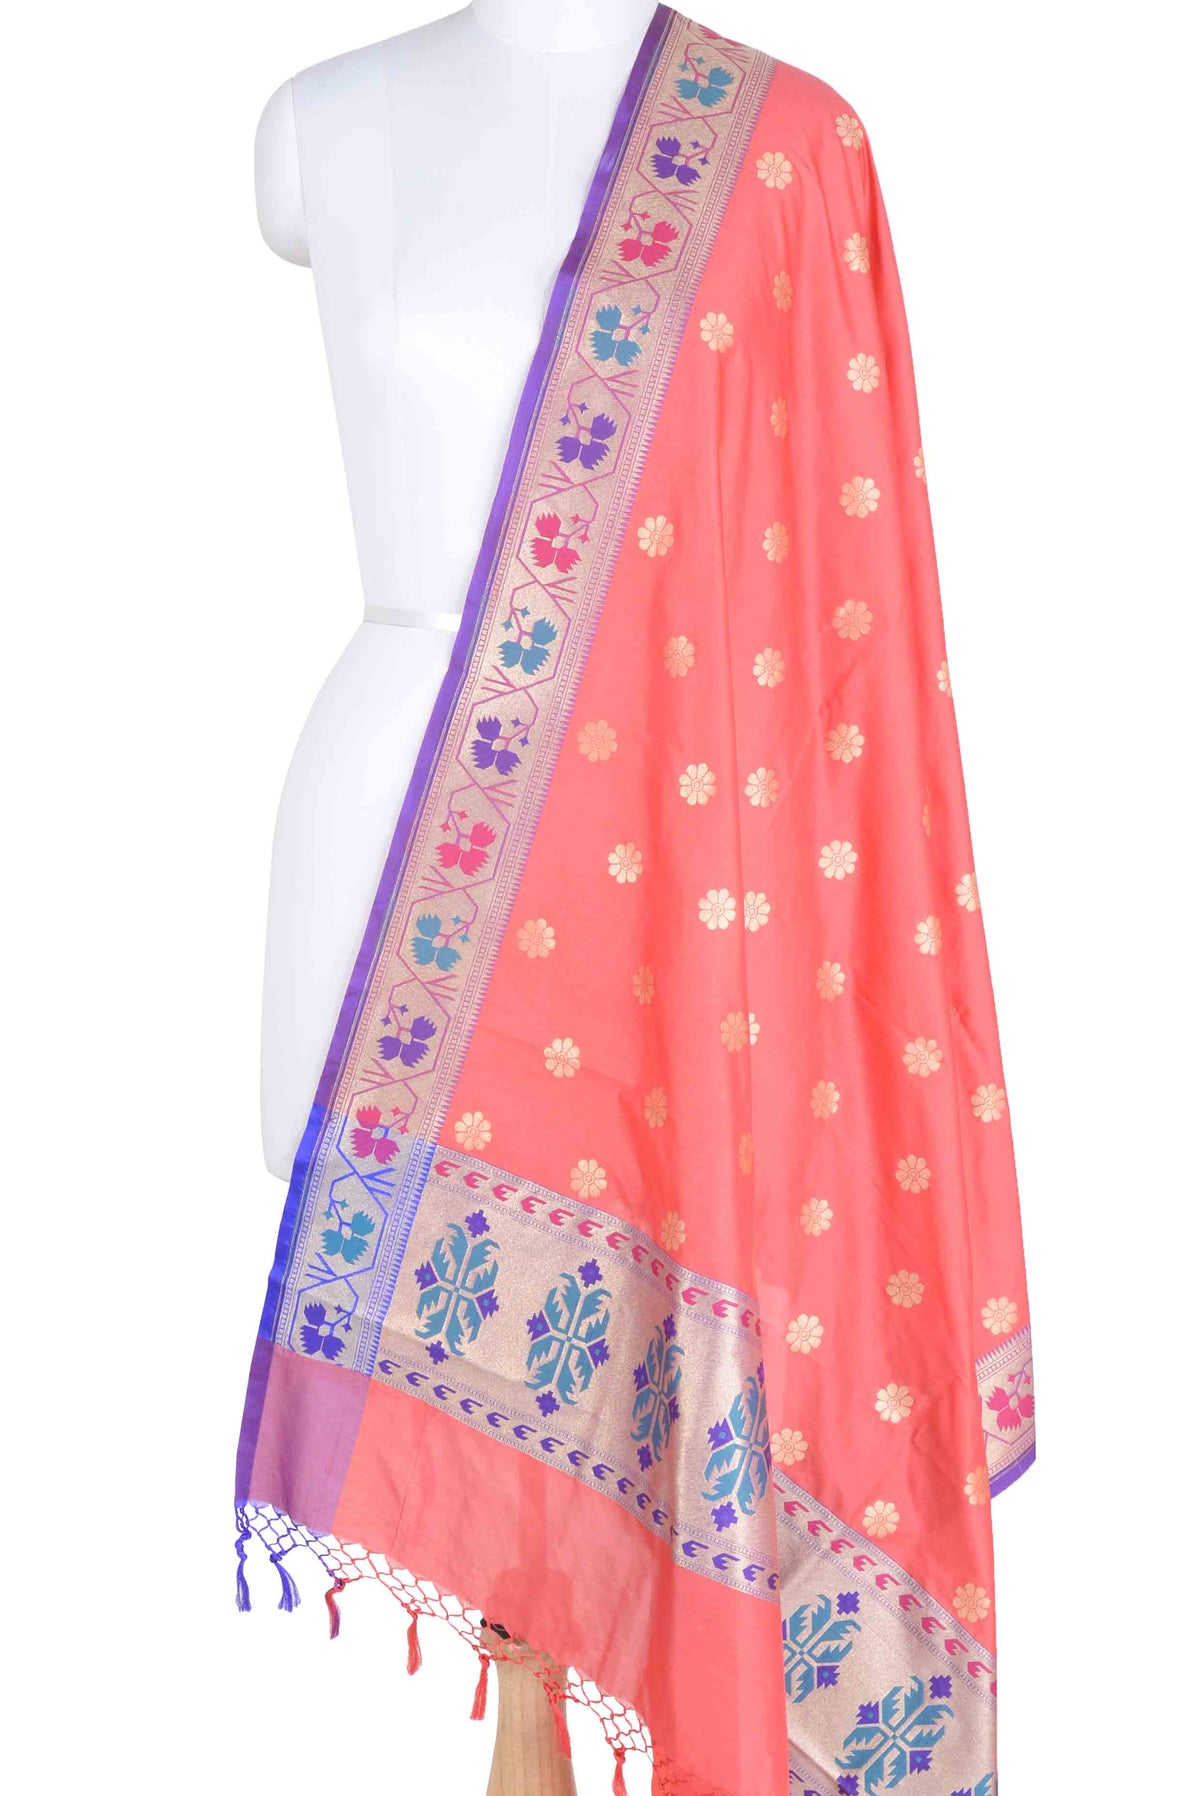 Peach Banarasi Dupatta with multi color border with floral motif (1) Main